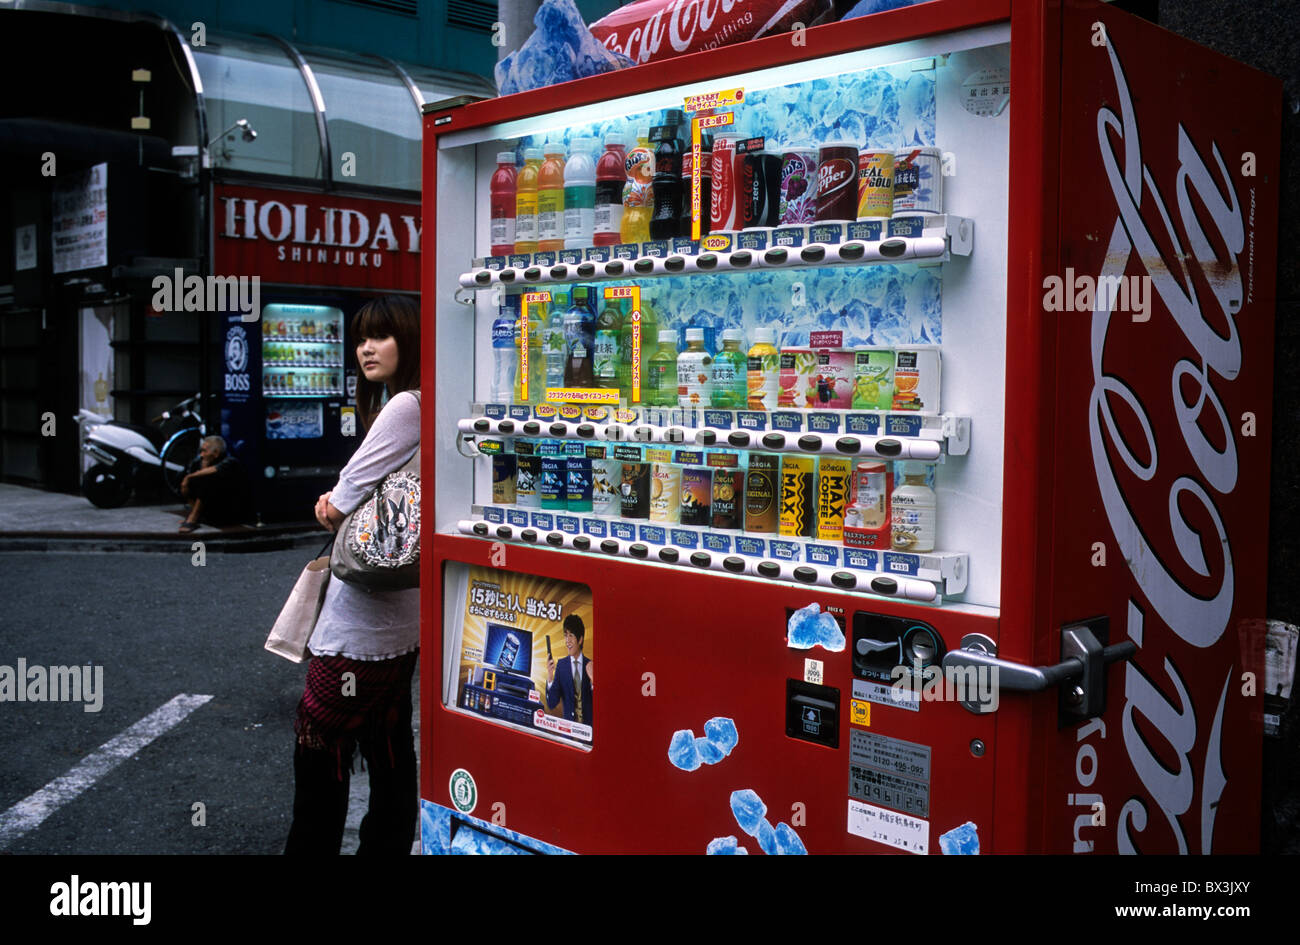 A lady standing near an automatic beverage vending machine in Shinjuku, Tokyo, Japan. 20-Sep-2010 - Stock Image